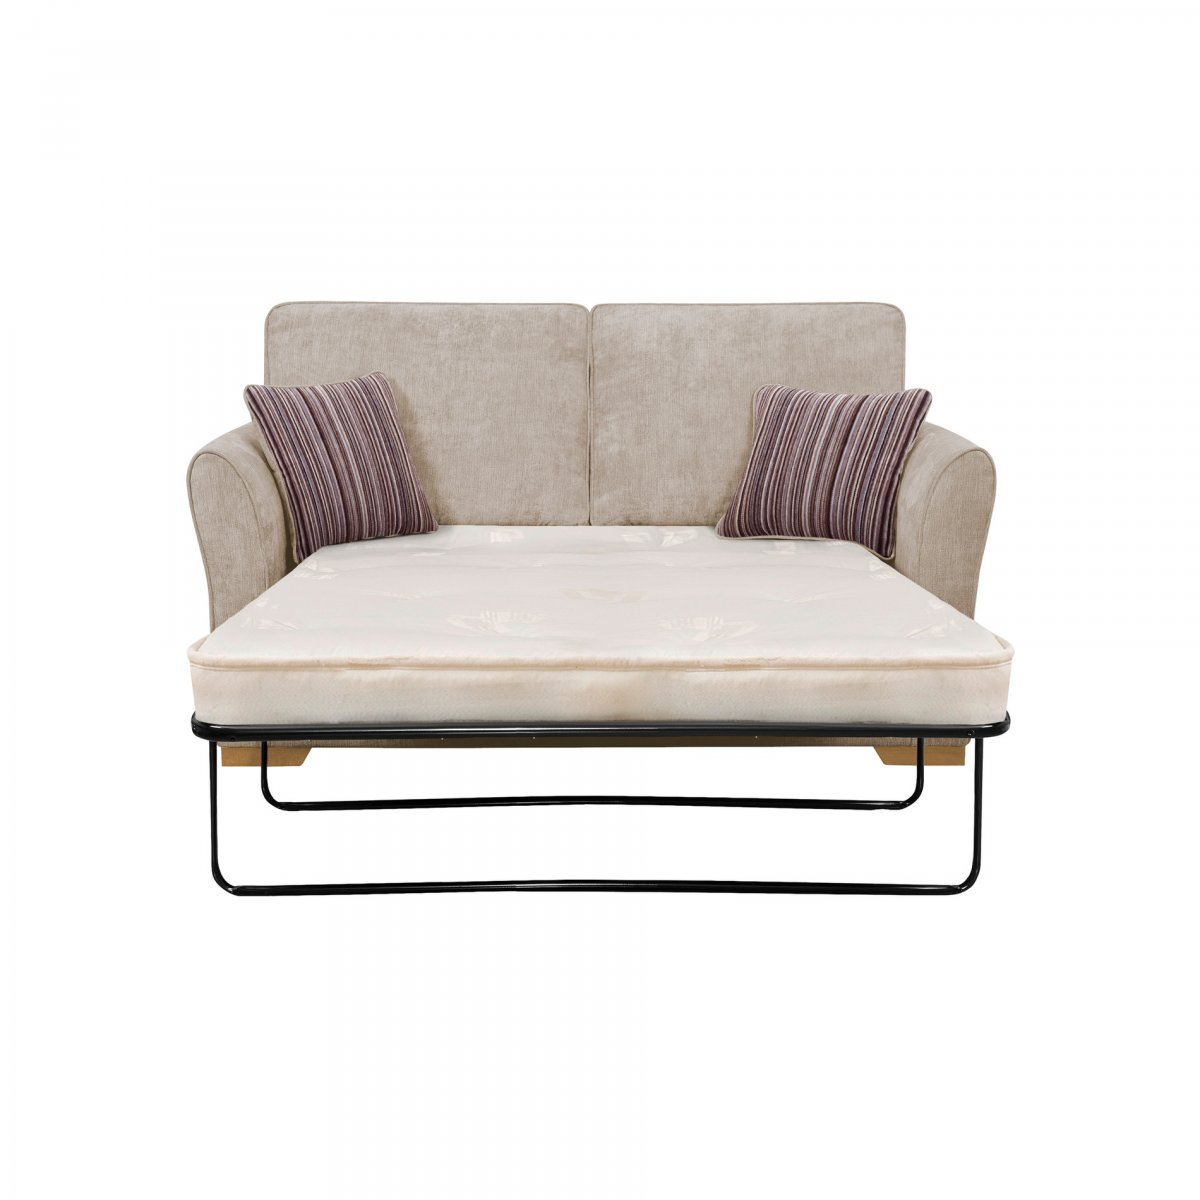 Jasmine 2 Seater Sofa Bed With Deluxe Mattress In Silver